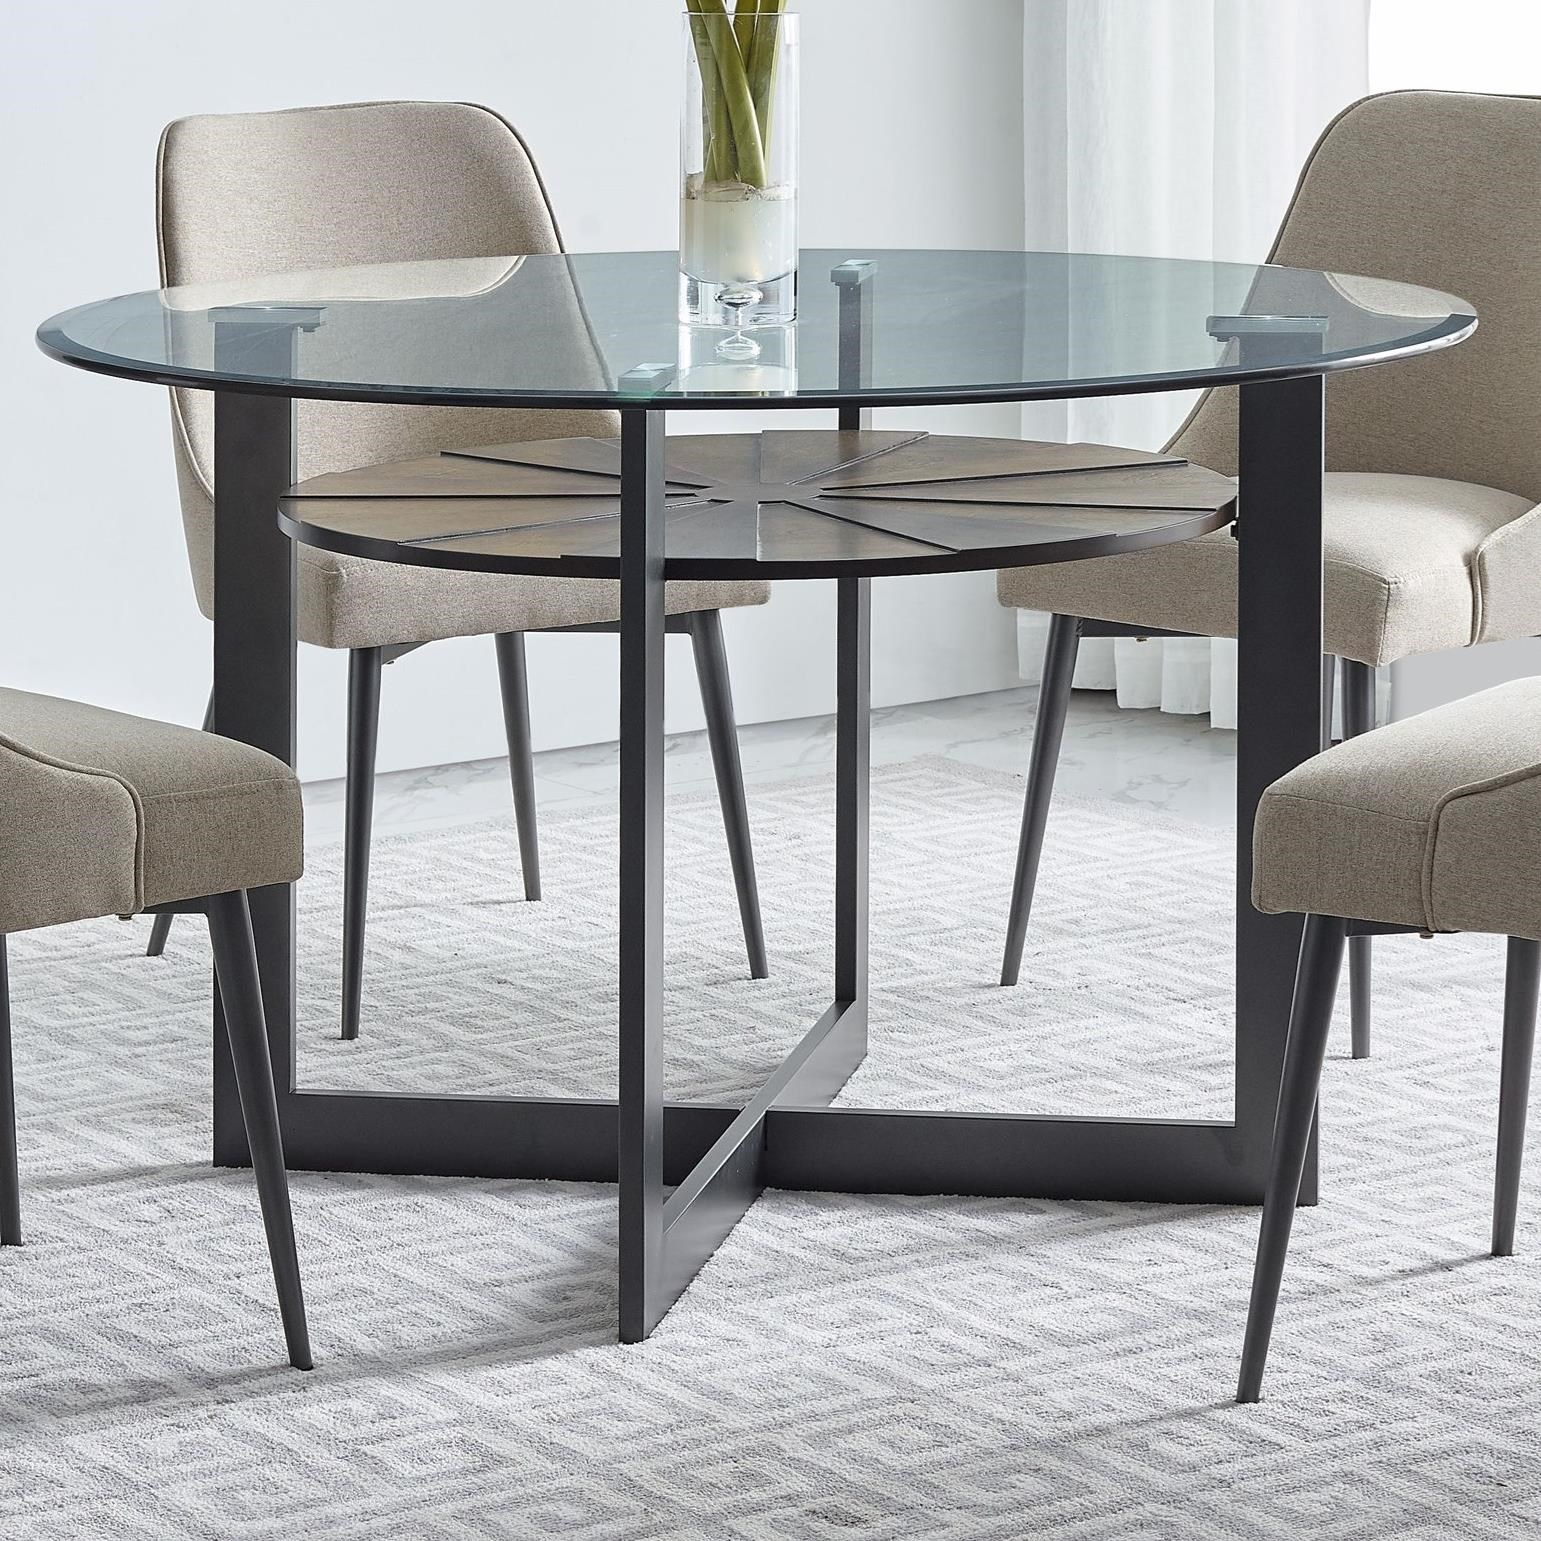 Olson SS Round Glass Dining Table by Steve Silver at Walker's Furniture